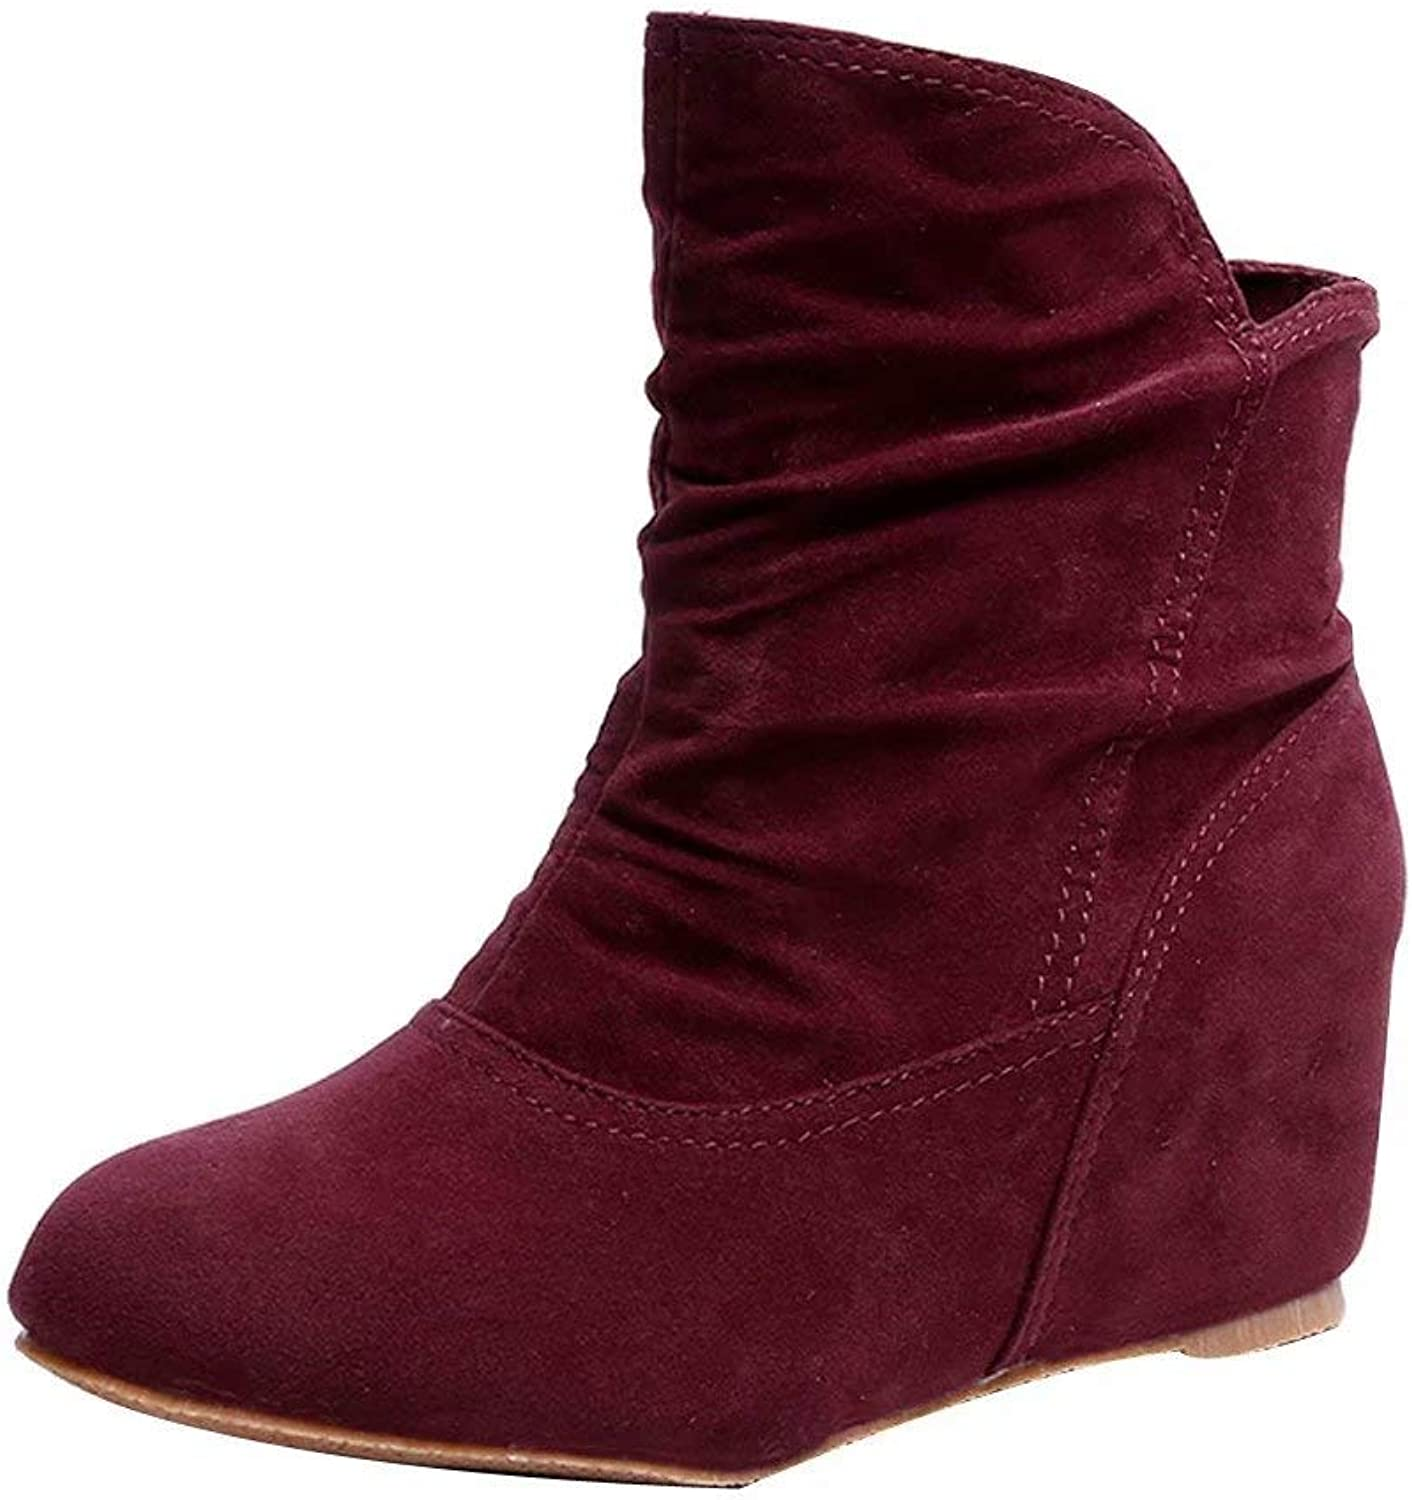 Women Increase Within Boot Booties Wedge Casual Boots Vintage Ankle Boot shoes